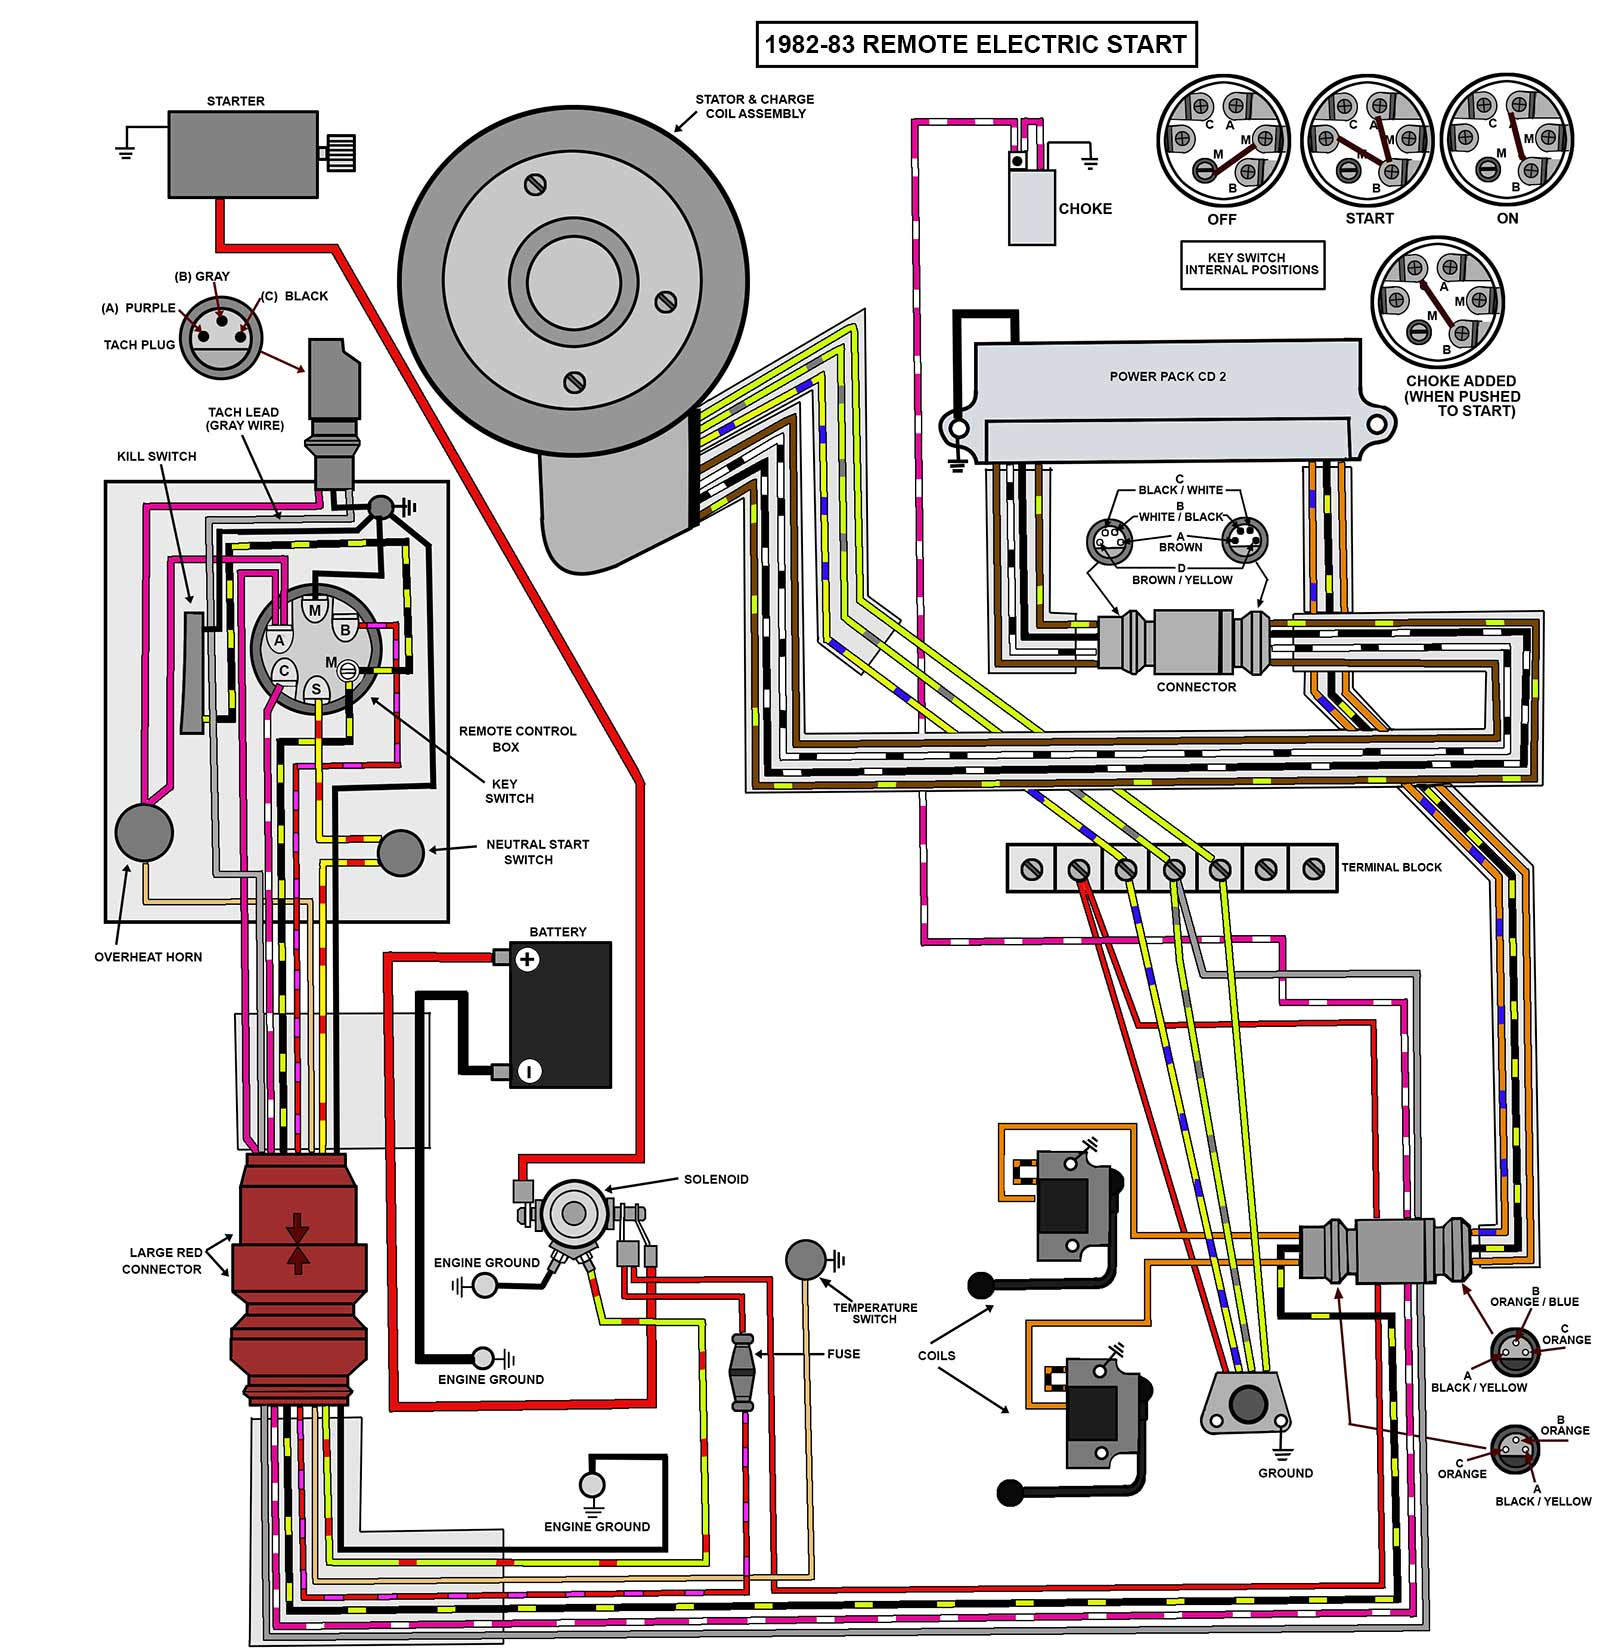 wiring schematic 75 85 hp mercury page 1 iboats boating forums1982 evinrude 90hp ignition switch wire colors page 1 iboats wiring schematic 75 85 hp mercury page 1 iboats boating forums